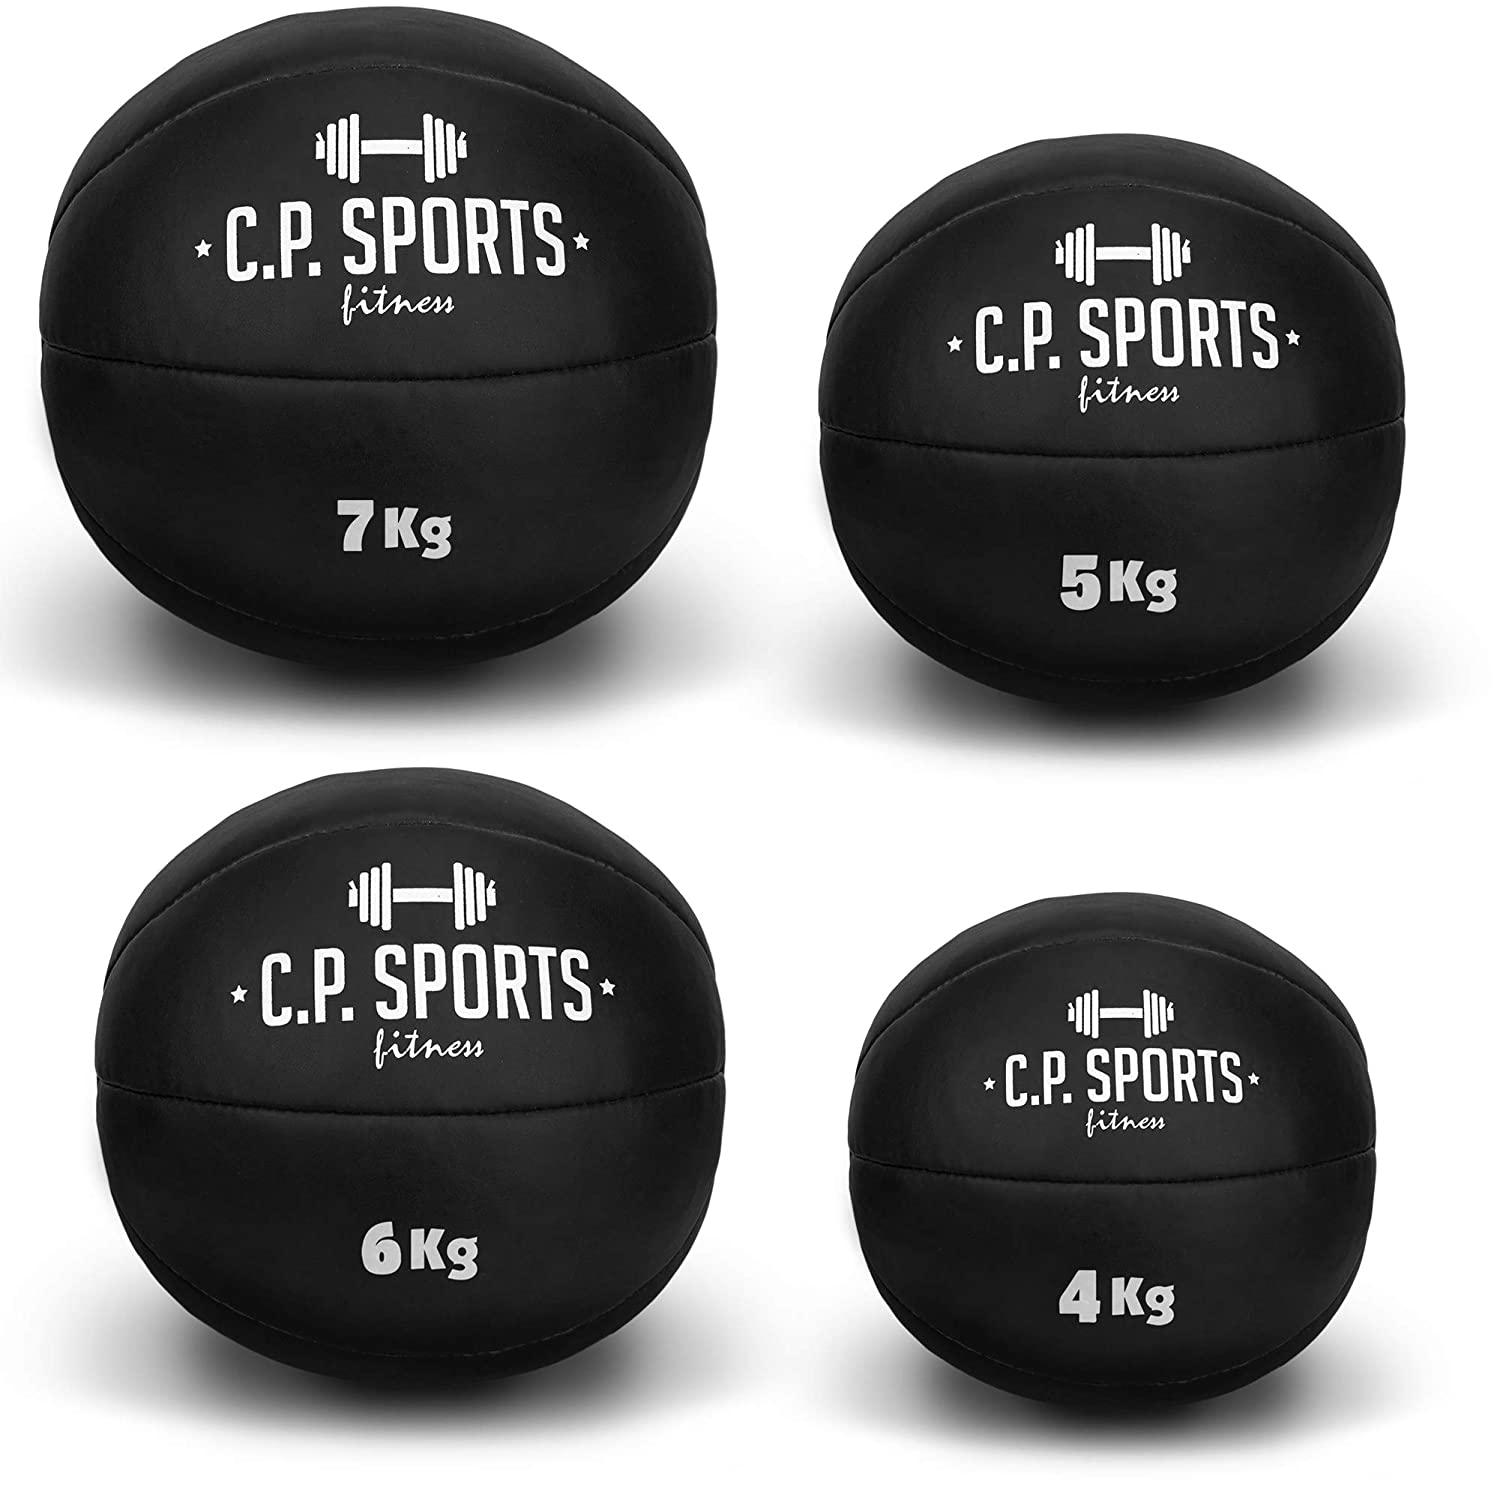 C.P. Sports - Balón Medicinal (para Crossfit, Disponible en Pesos de 1 a 10 kg C.P.Sports